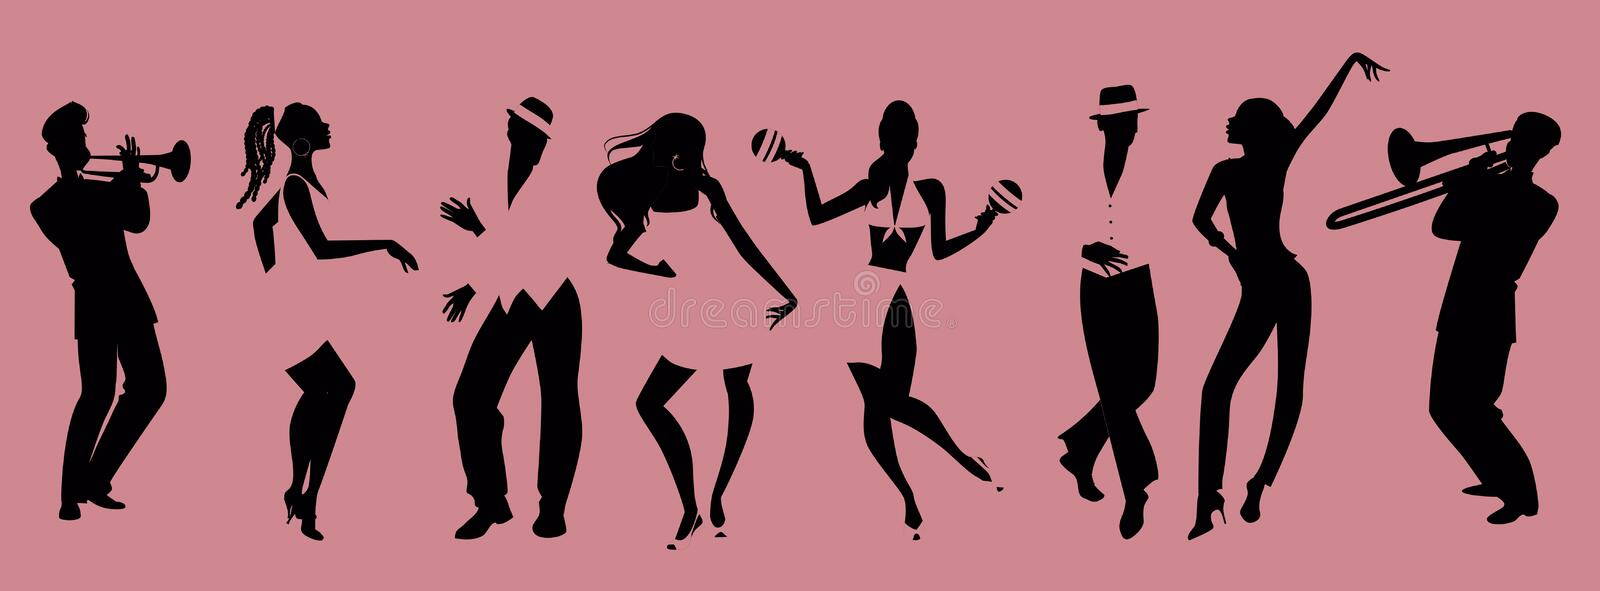 Silhouettes of people dancing salsa and musicians playing royalty free illustration